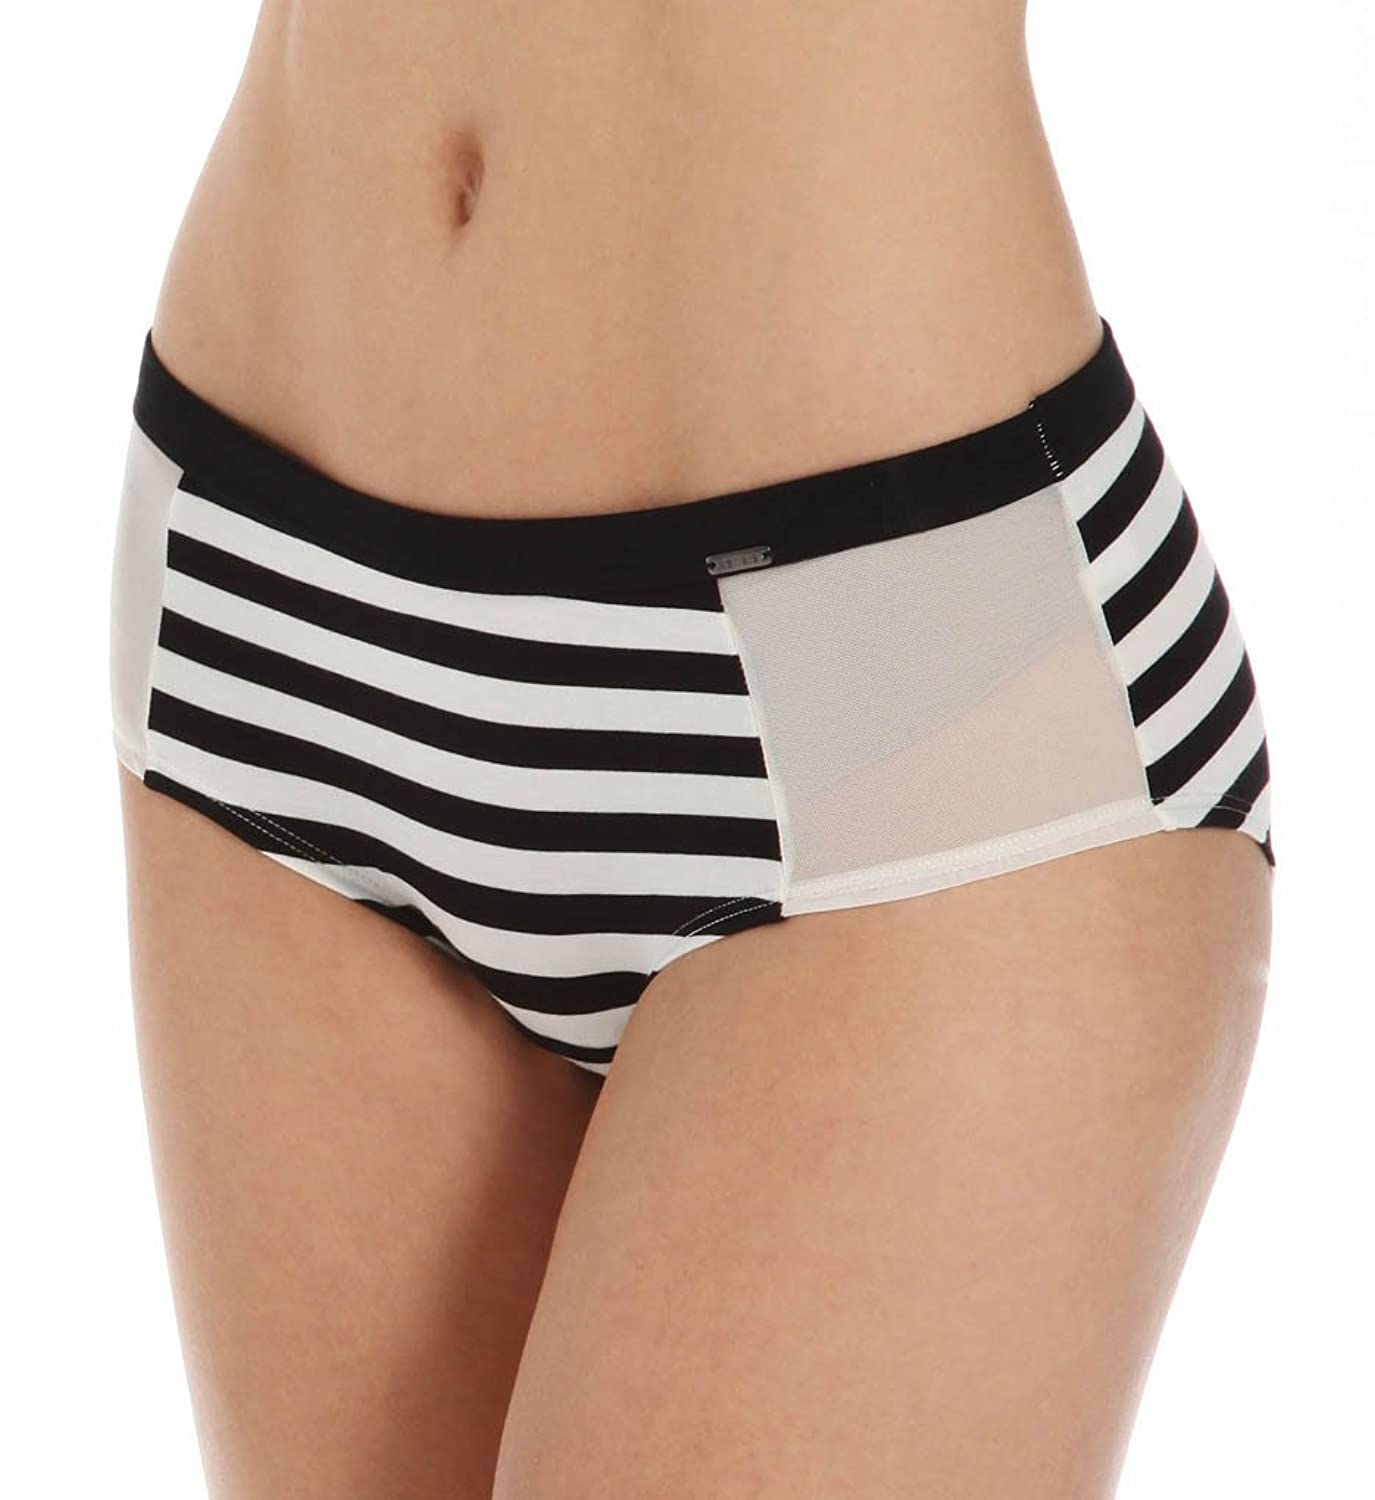 Kensie Women's Striped Side Ivory Mesh Black Stripes Boyshort Panties